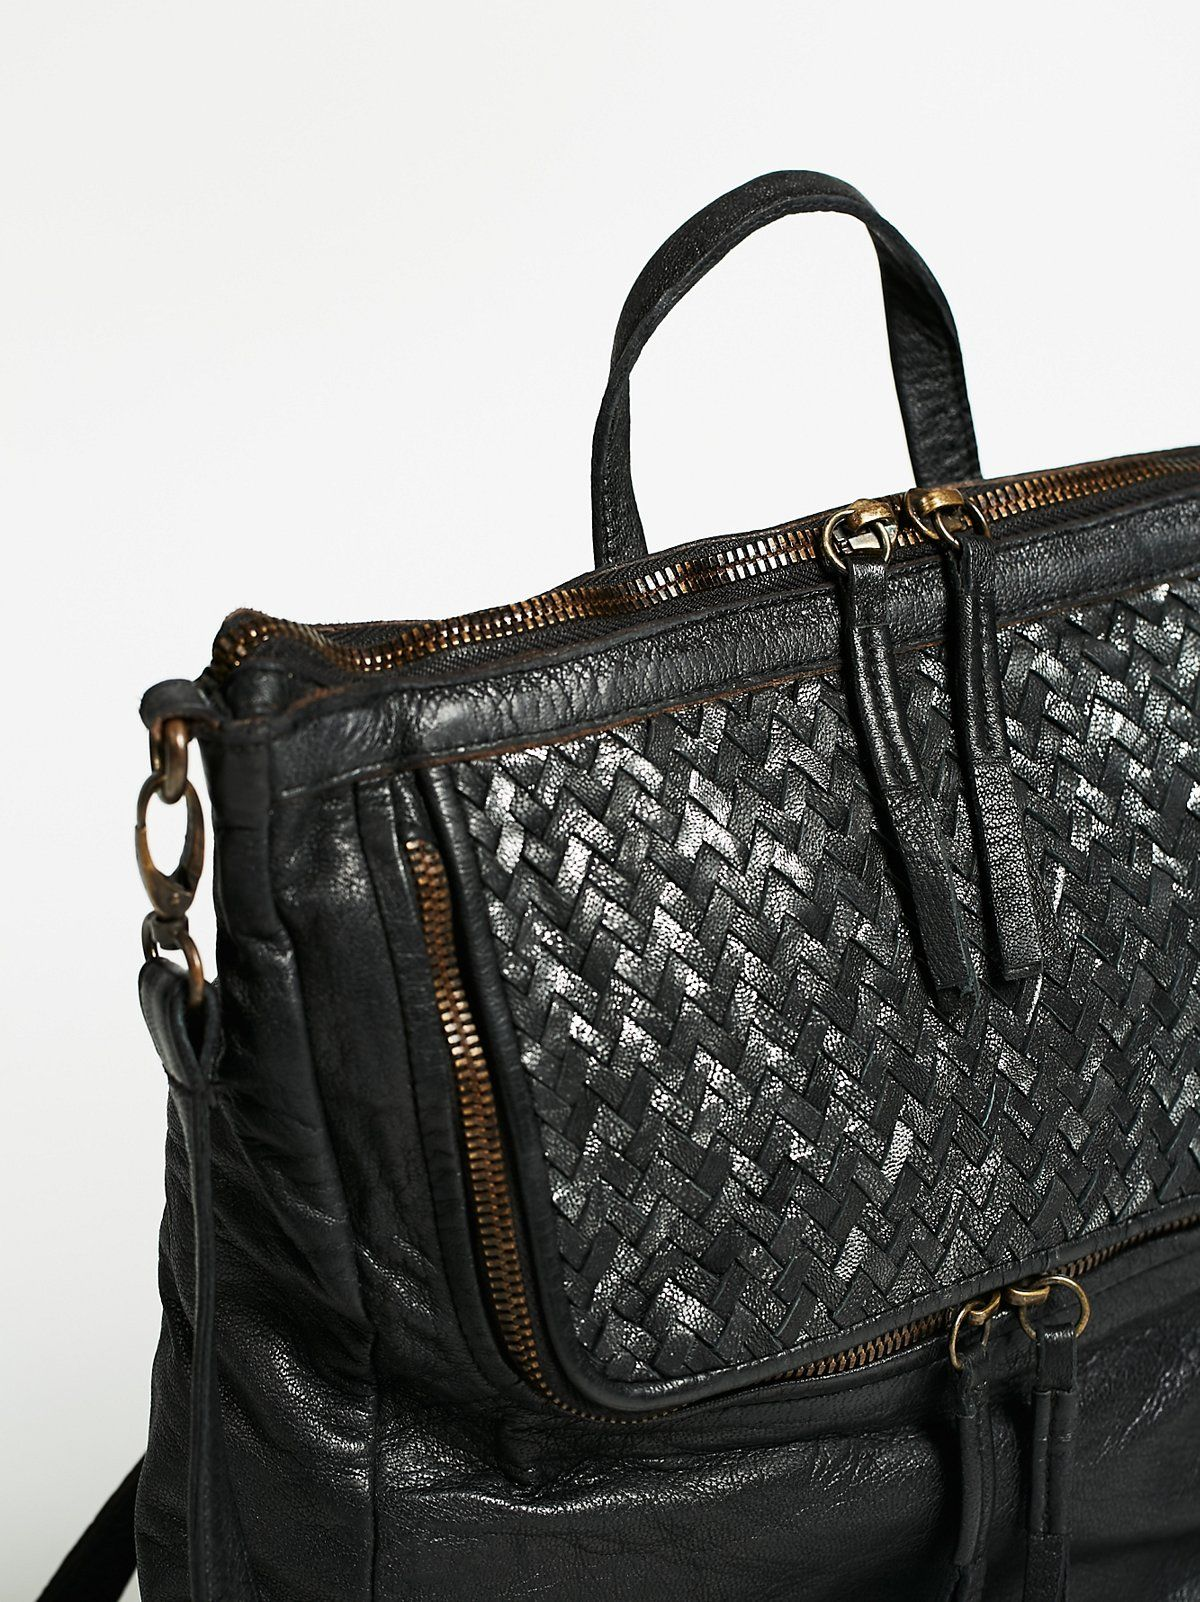 Backpacks Messenger Bags For Women Free People View The Whole Collection Share